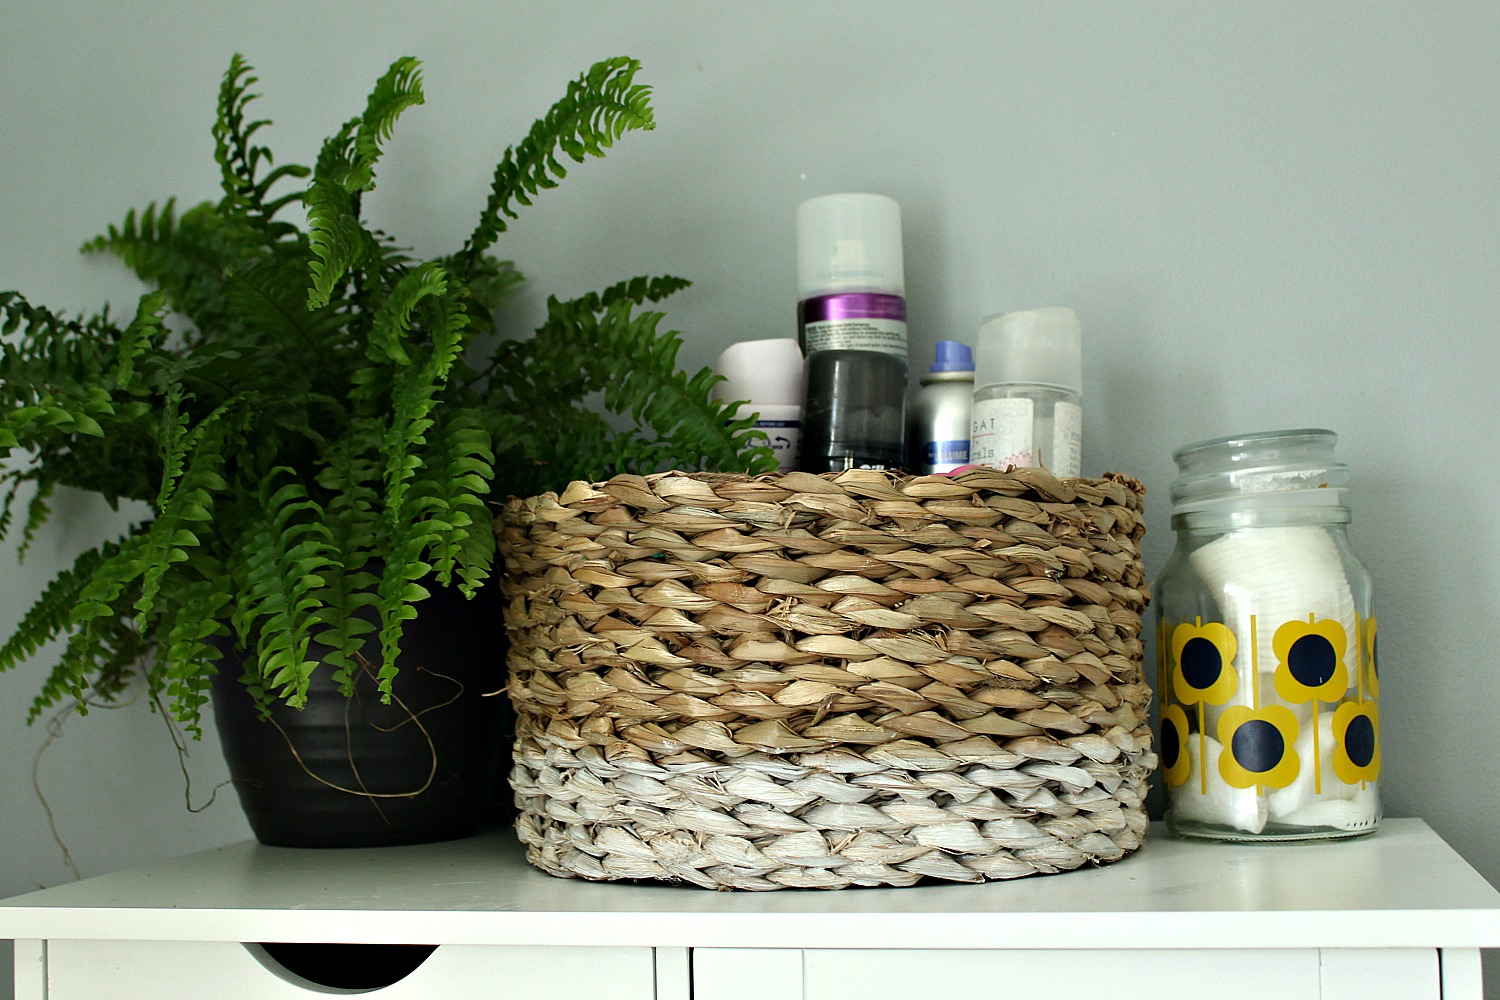 ferns and baskets